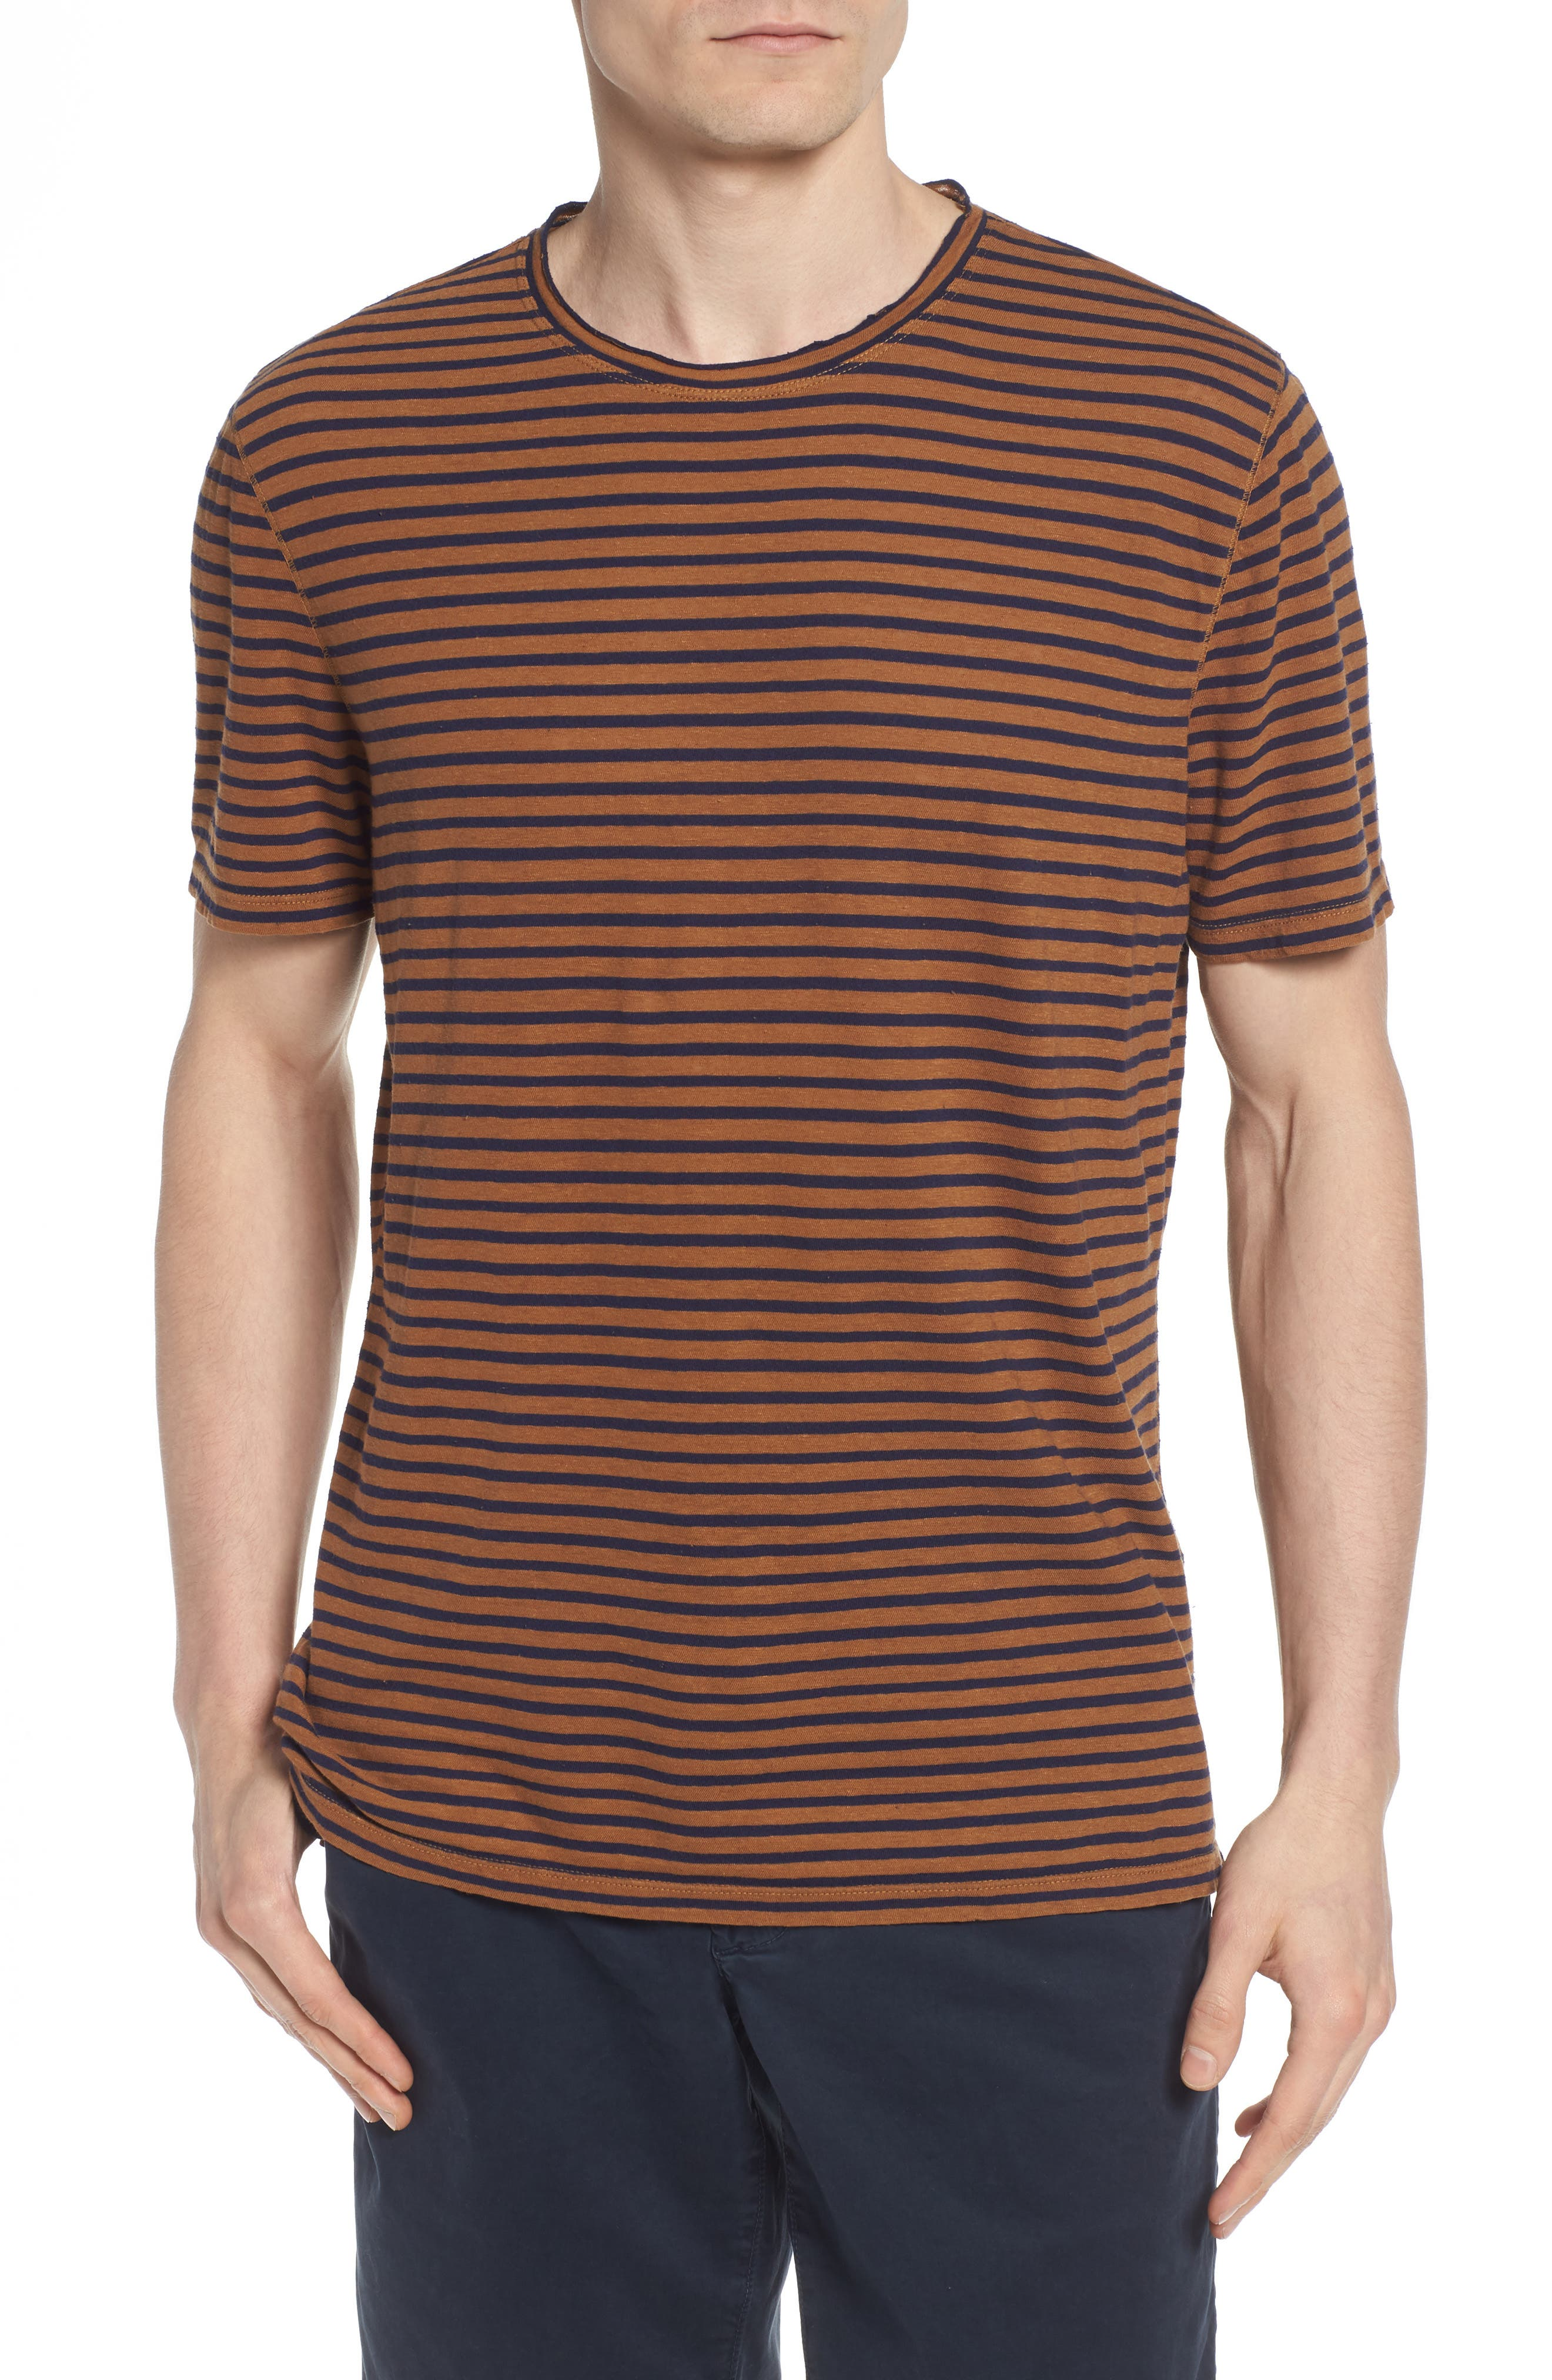 Theo Striped Cotton & Linen T-Shirt,                         Main,                         color, BRONZE CLAY/ NAVY